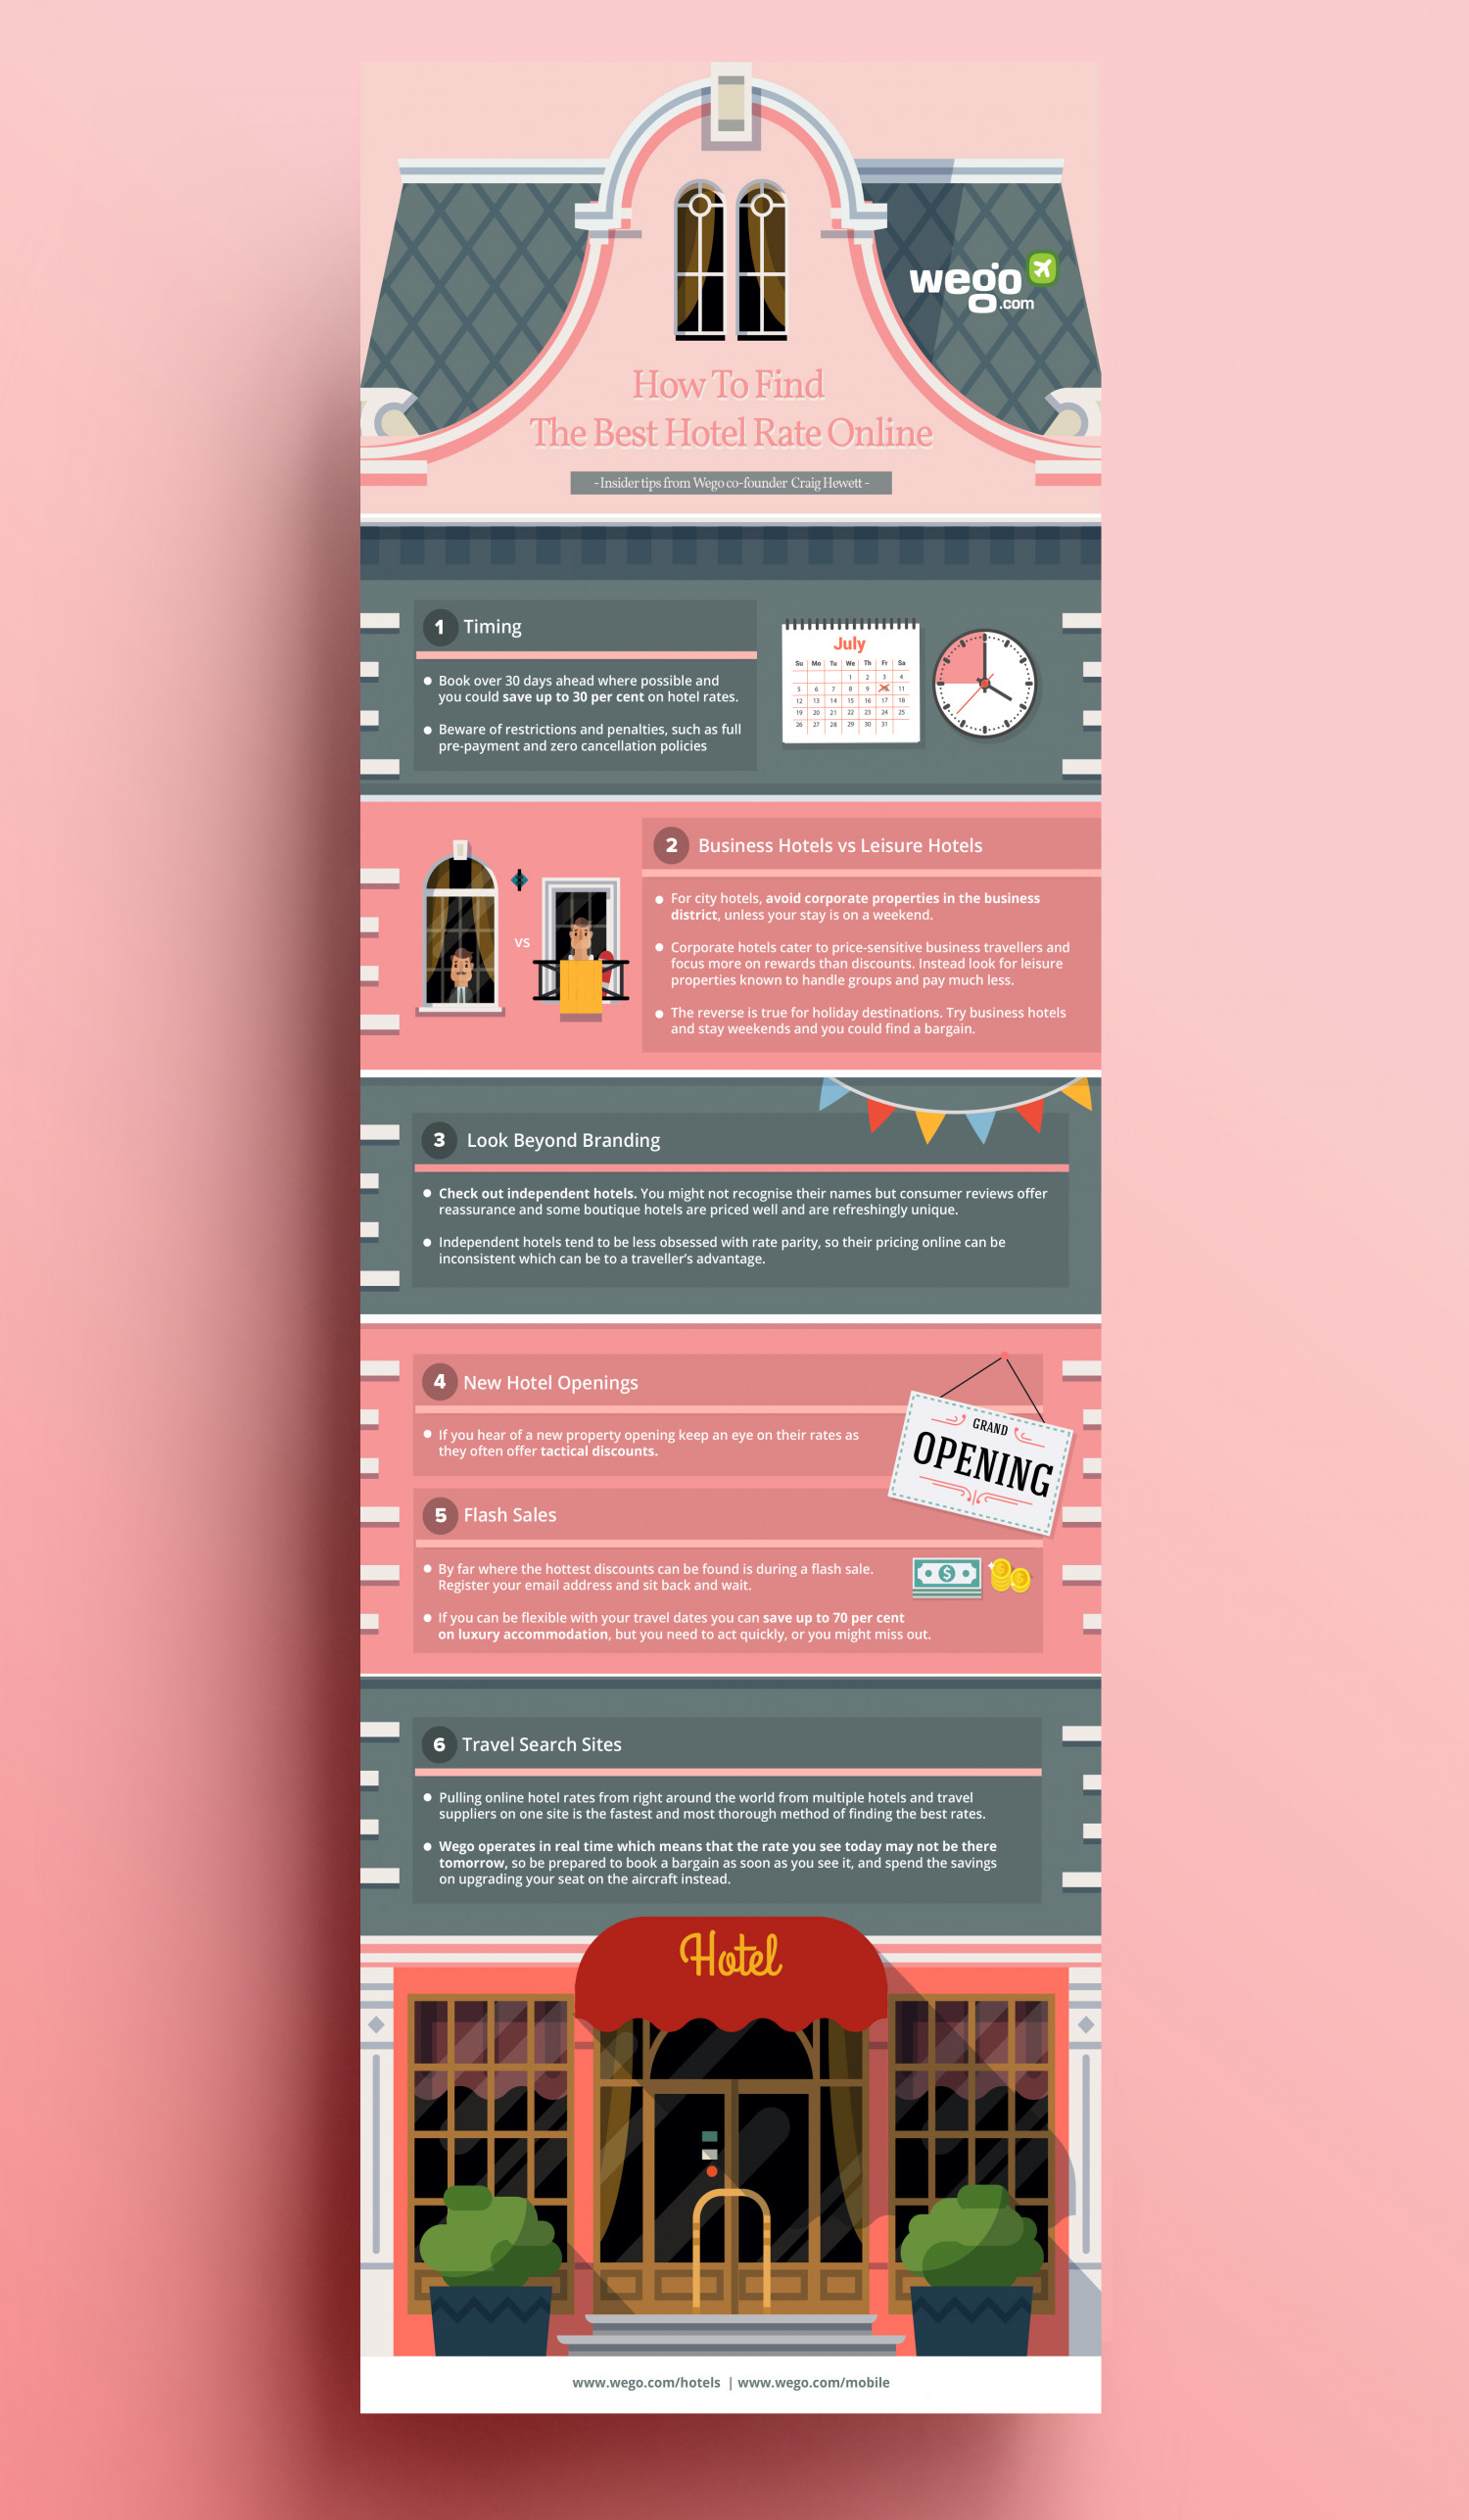 The truth about hotel rate parity Infographic